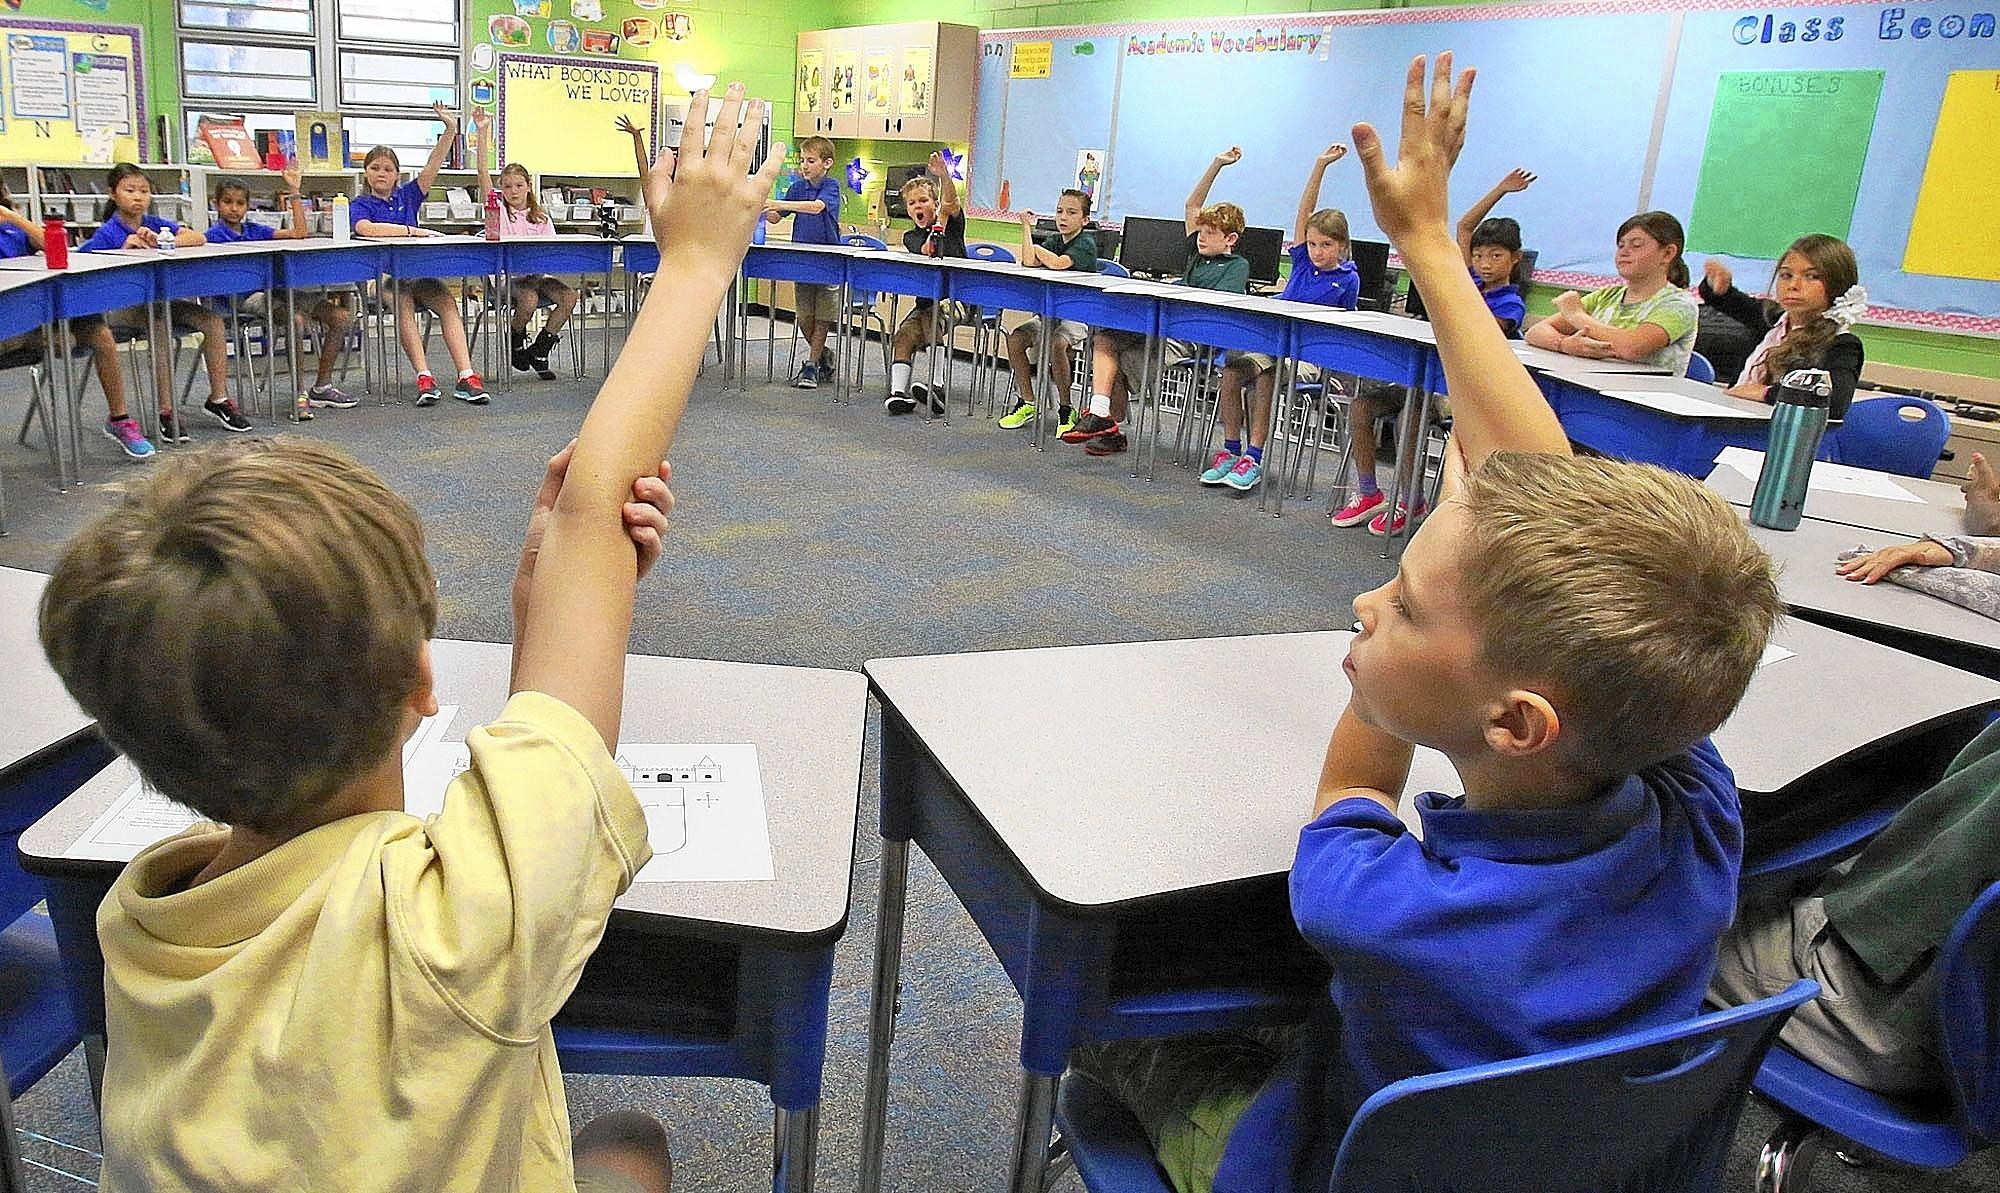 Students at Galileo School of Gifted Learning in Sanford raise their hands when asked a question by Language Arts teacher Jana Spitalnick